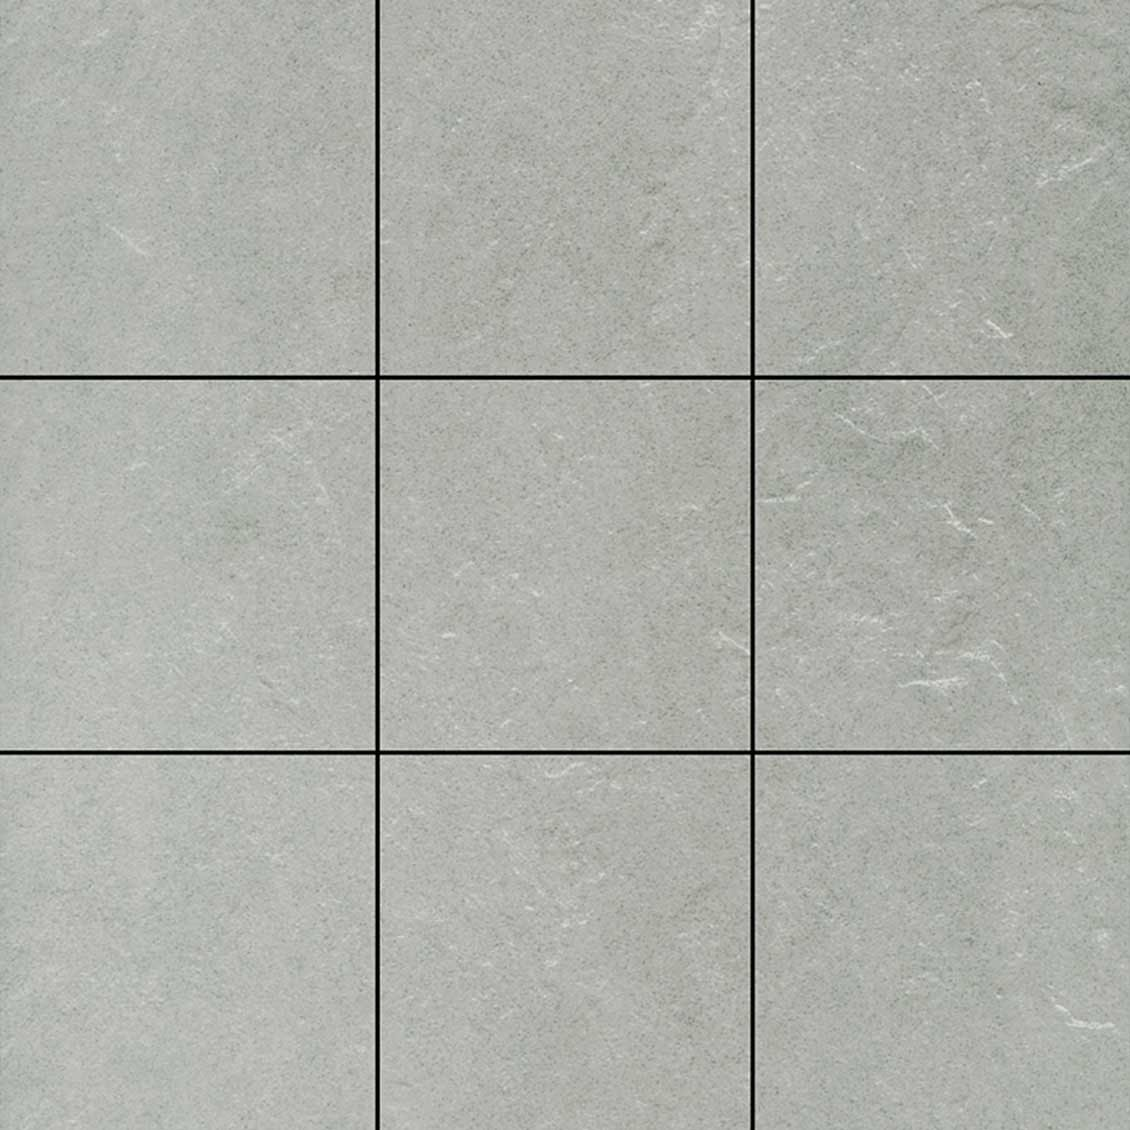 Carrelage design carrelage texture moderne design pour for Carrelage pour le sol